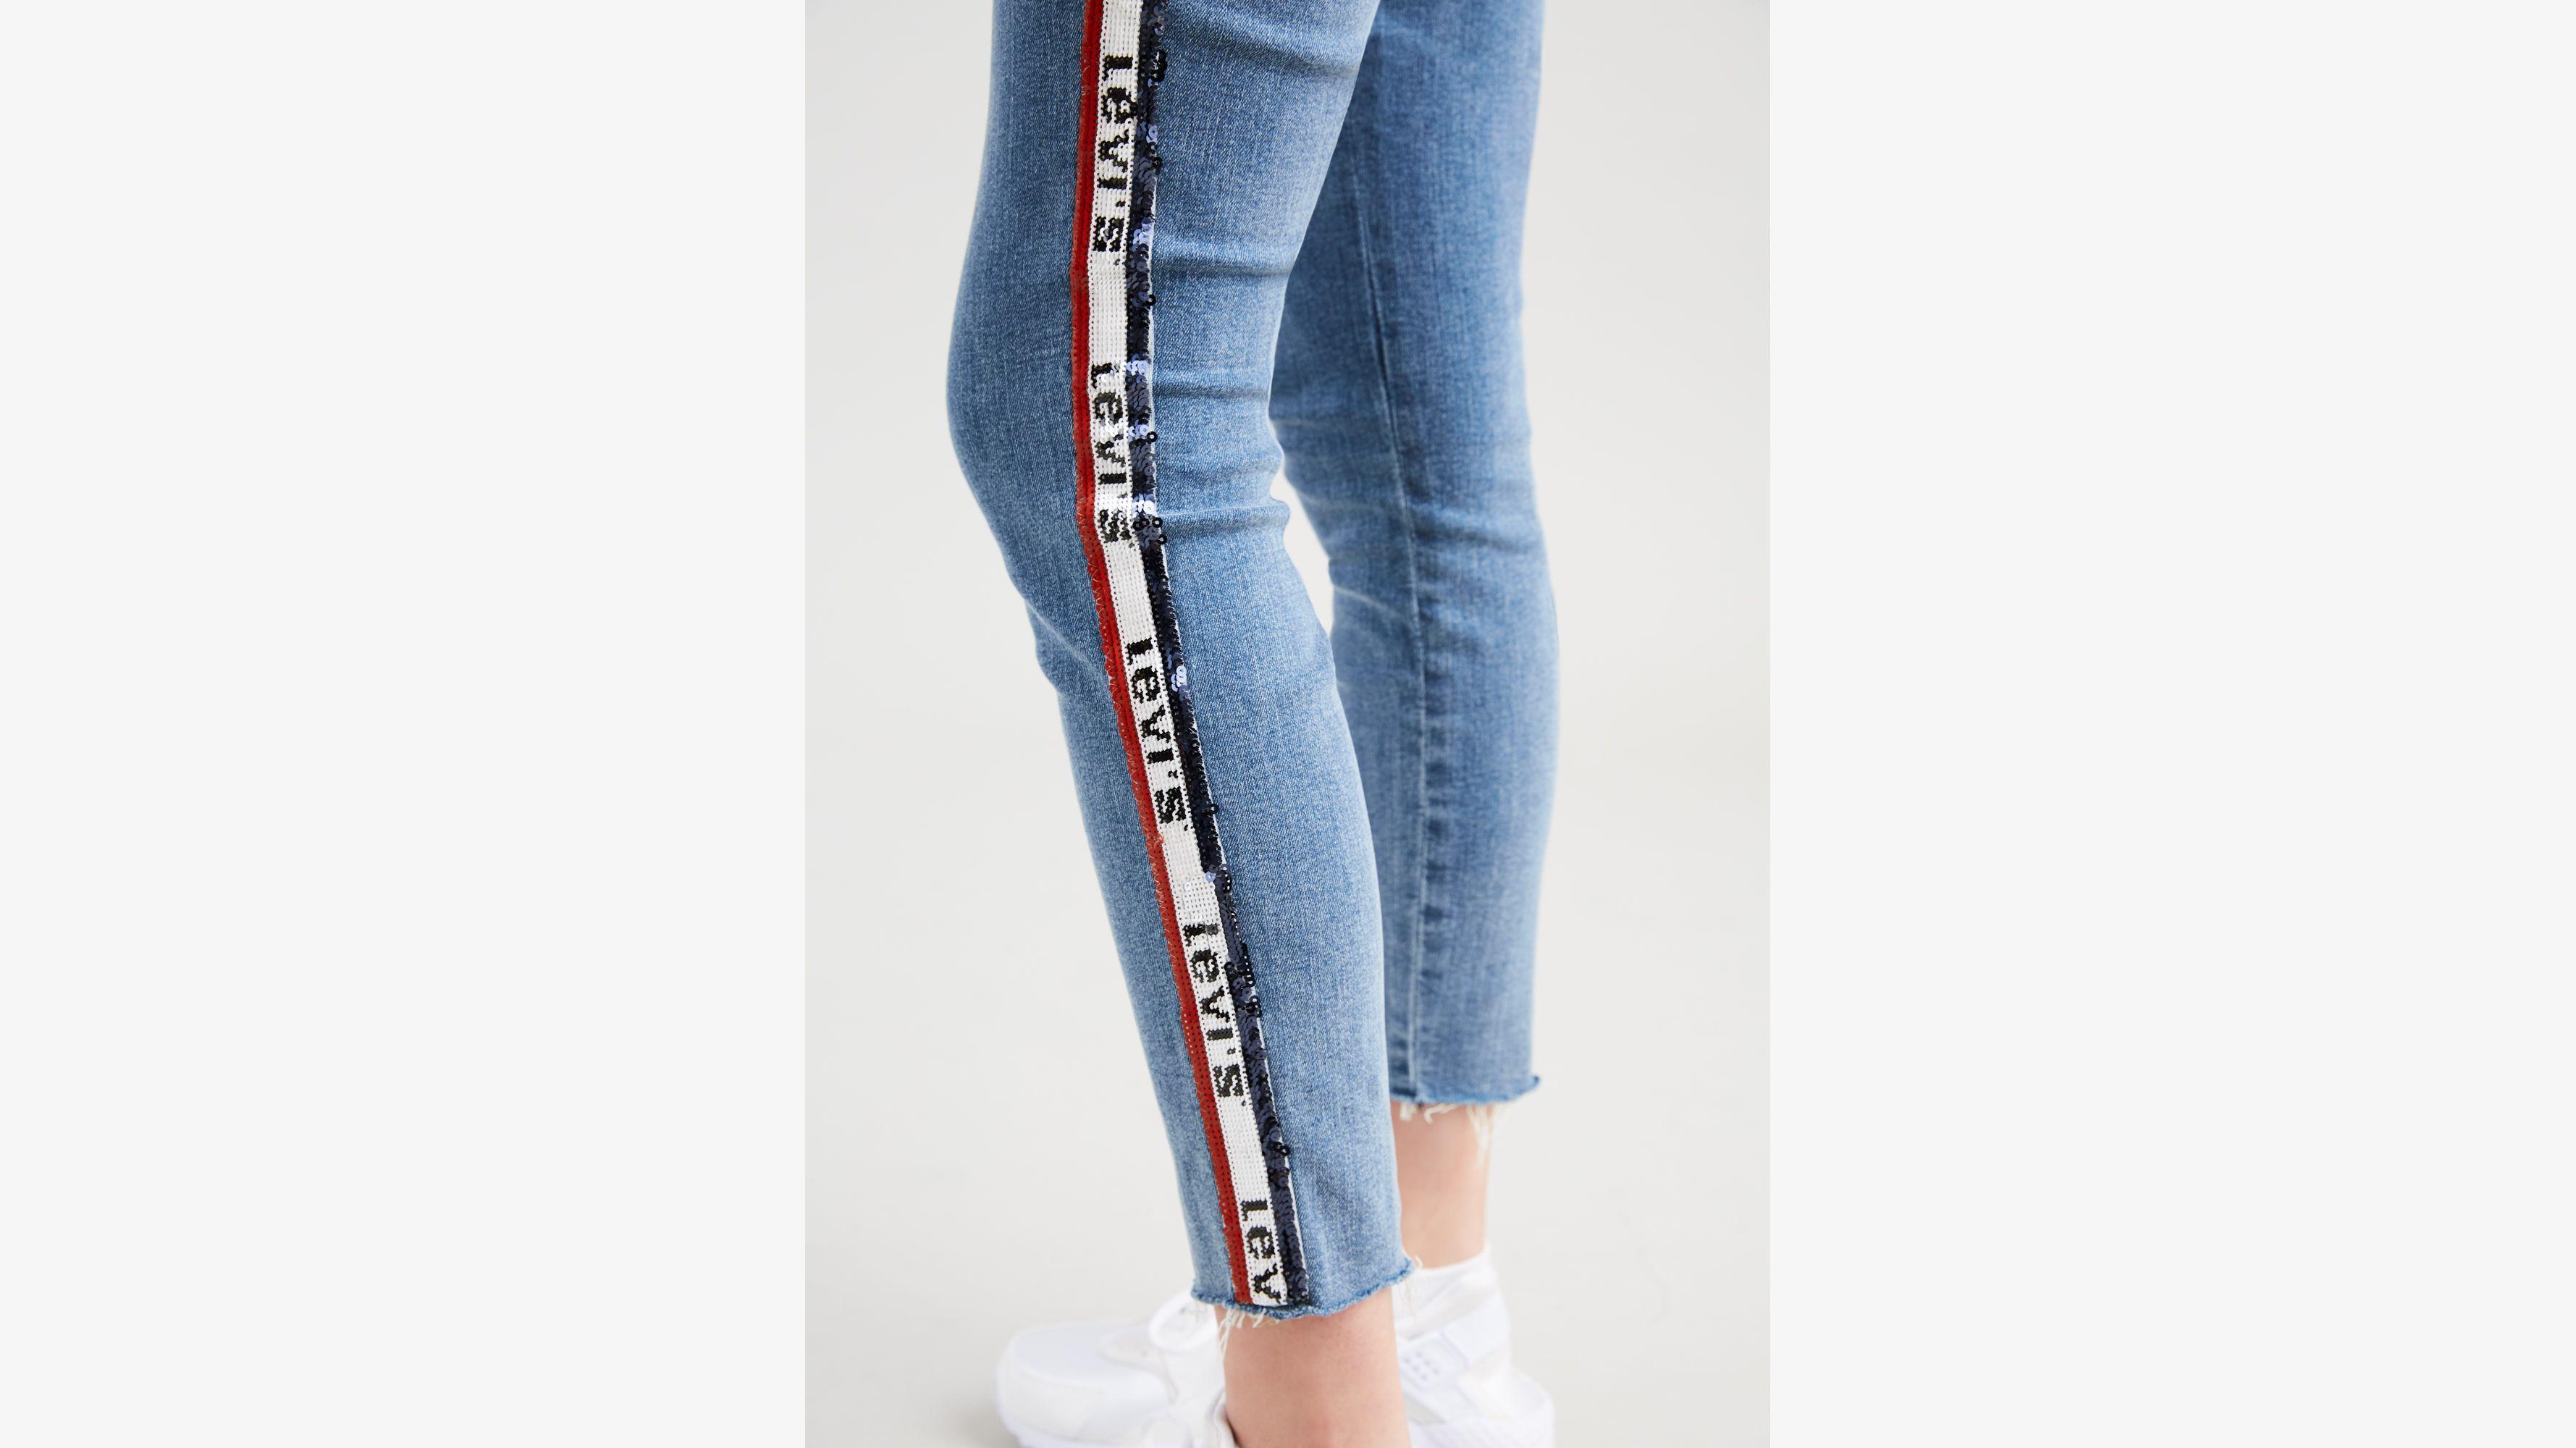 Jeans Women 721 Gr High Rise Clothing Skinny Ankle Levi's® IXaqp